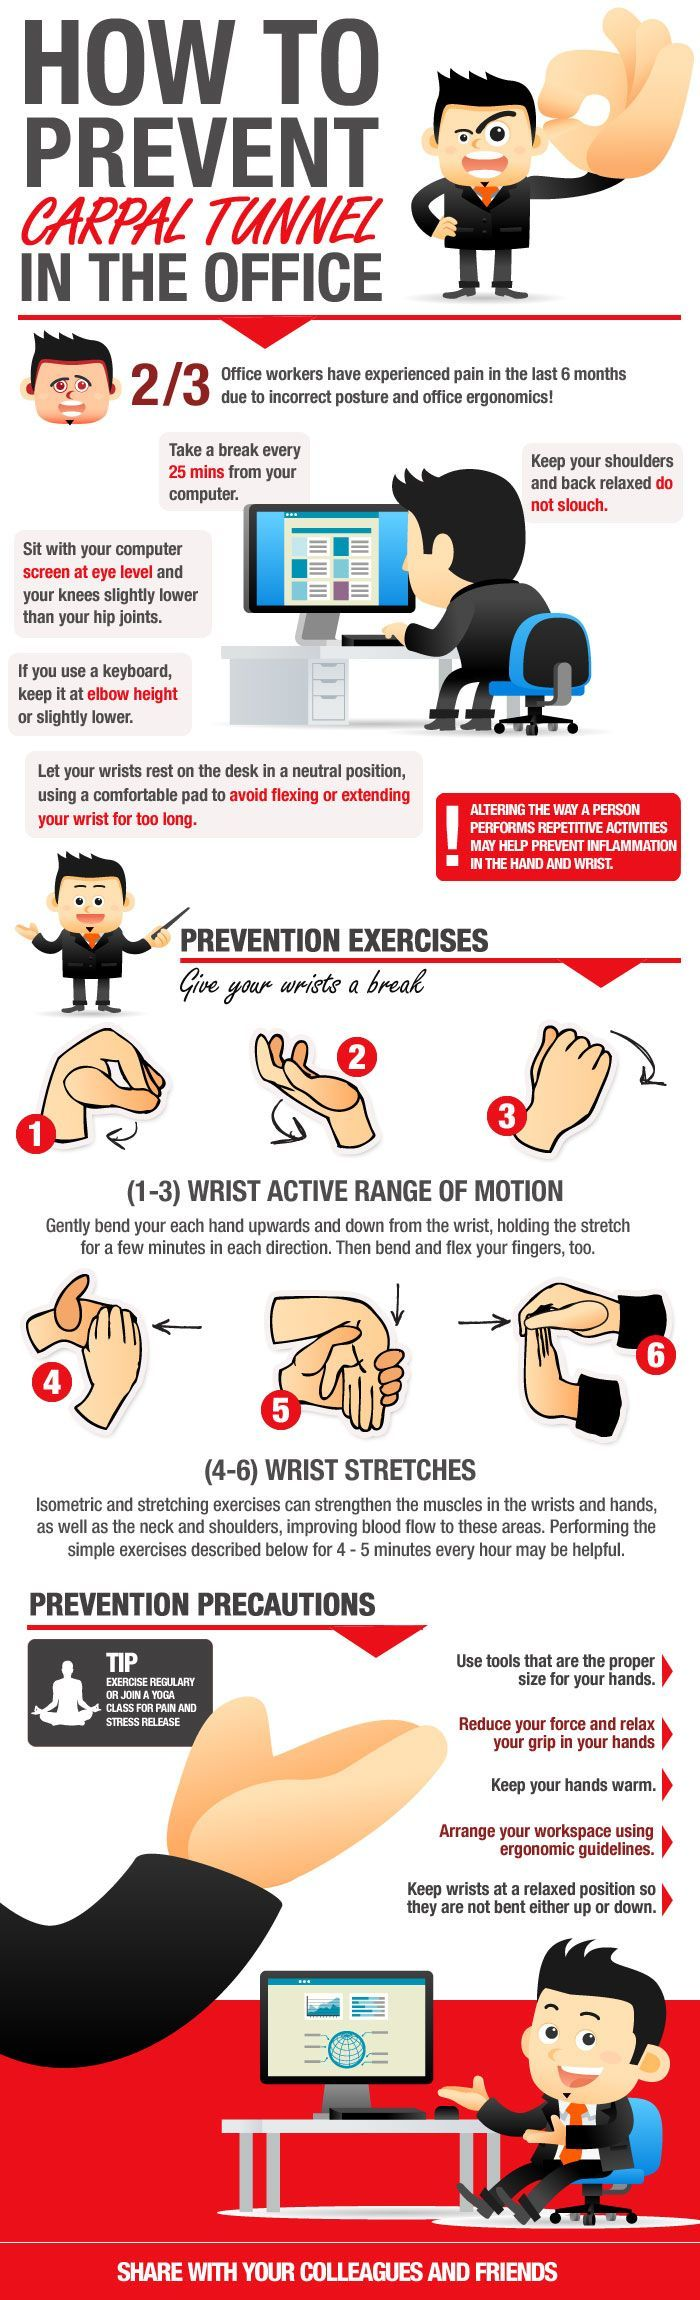 How to prevent Carpal Tunnel Syndrome in the office #Health #Infographic